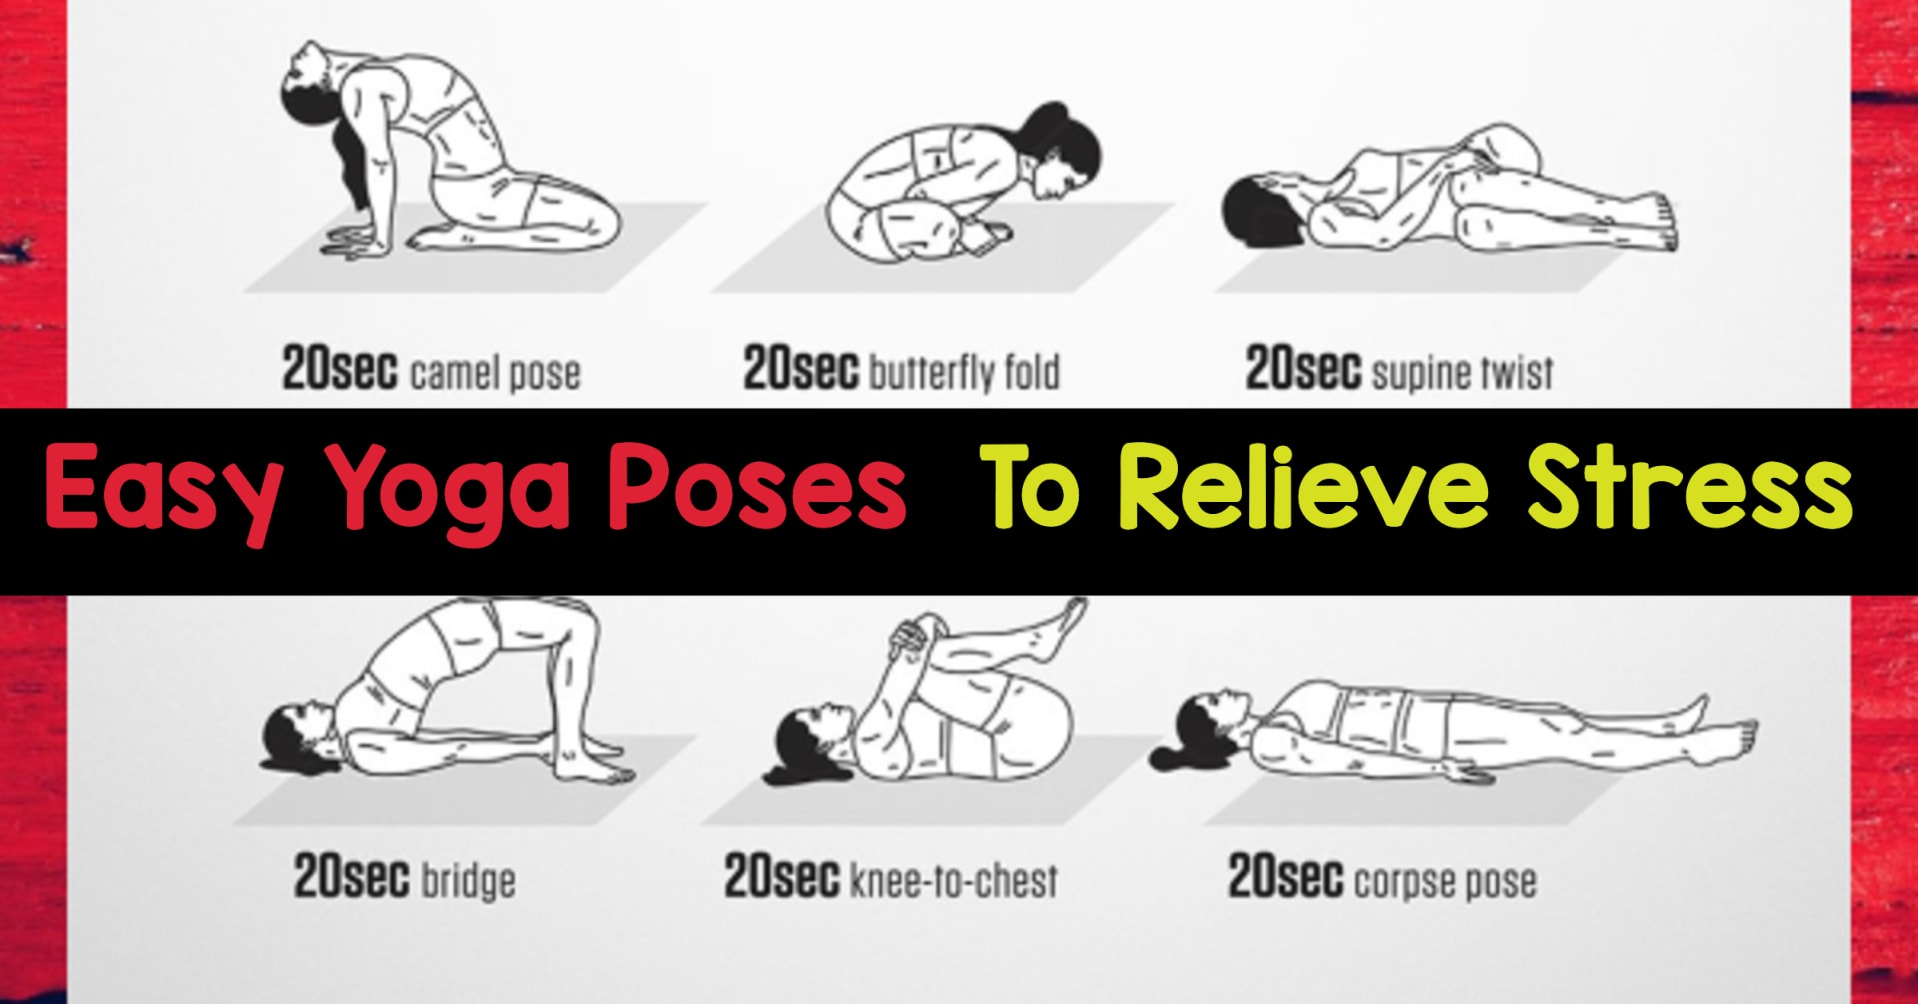 Easy Yoga Poses and Yoga Routines to reduce stress and sleep better - could be fun and easy yoga poses for two!